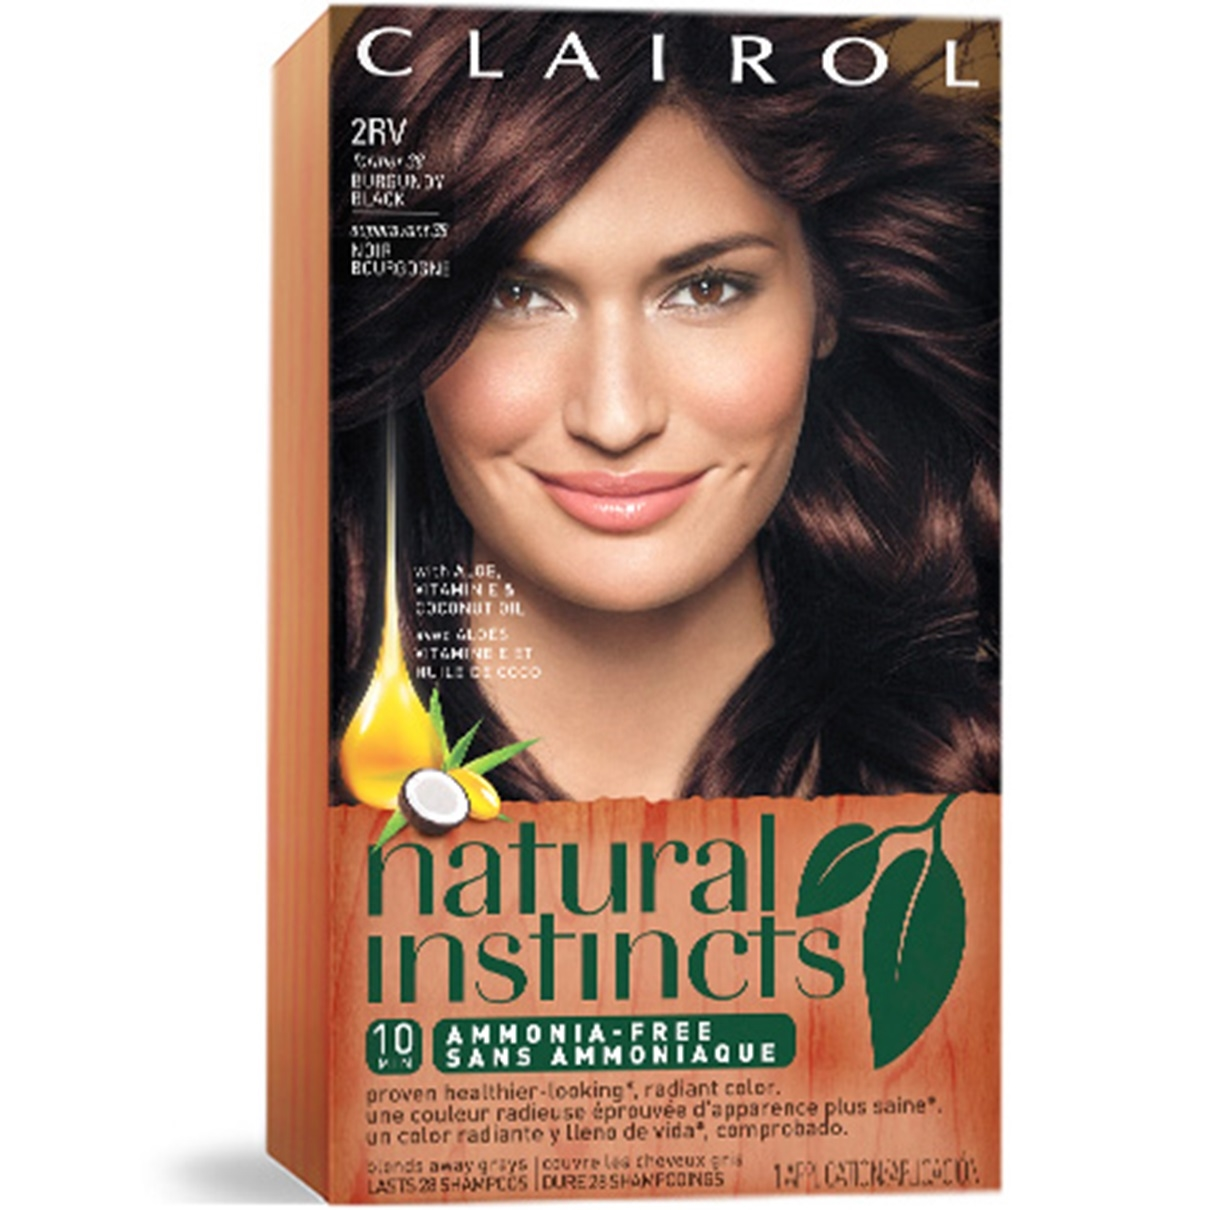 Natural Instincts Black Hair Dye